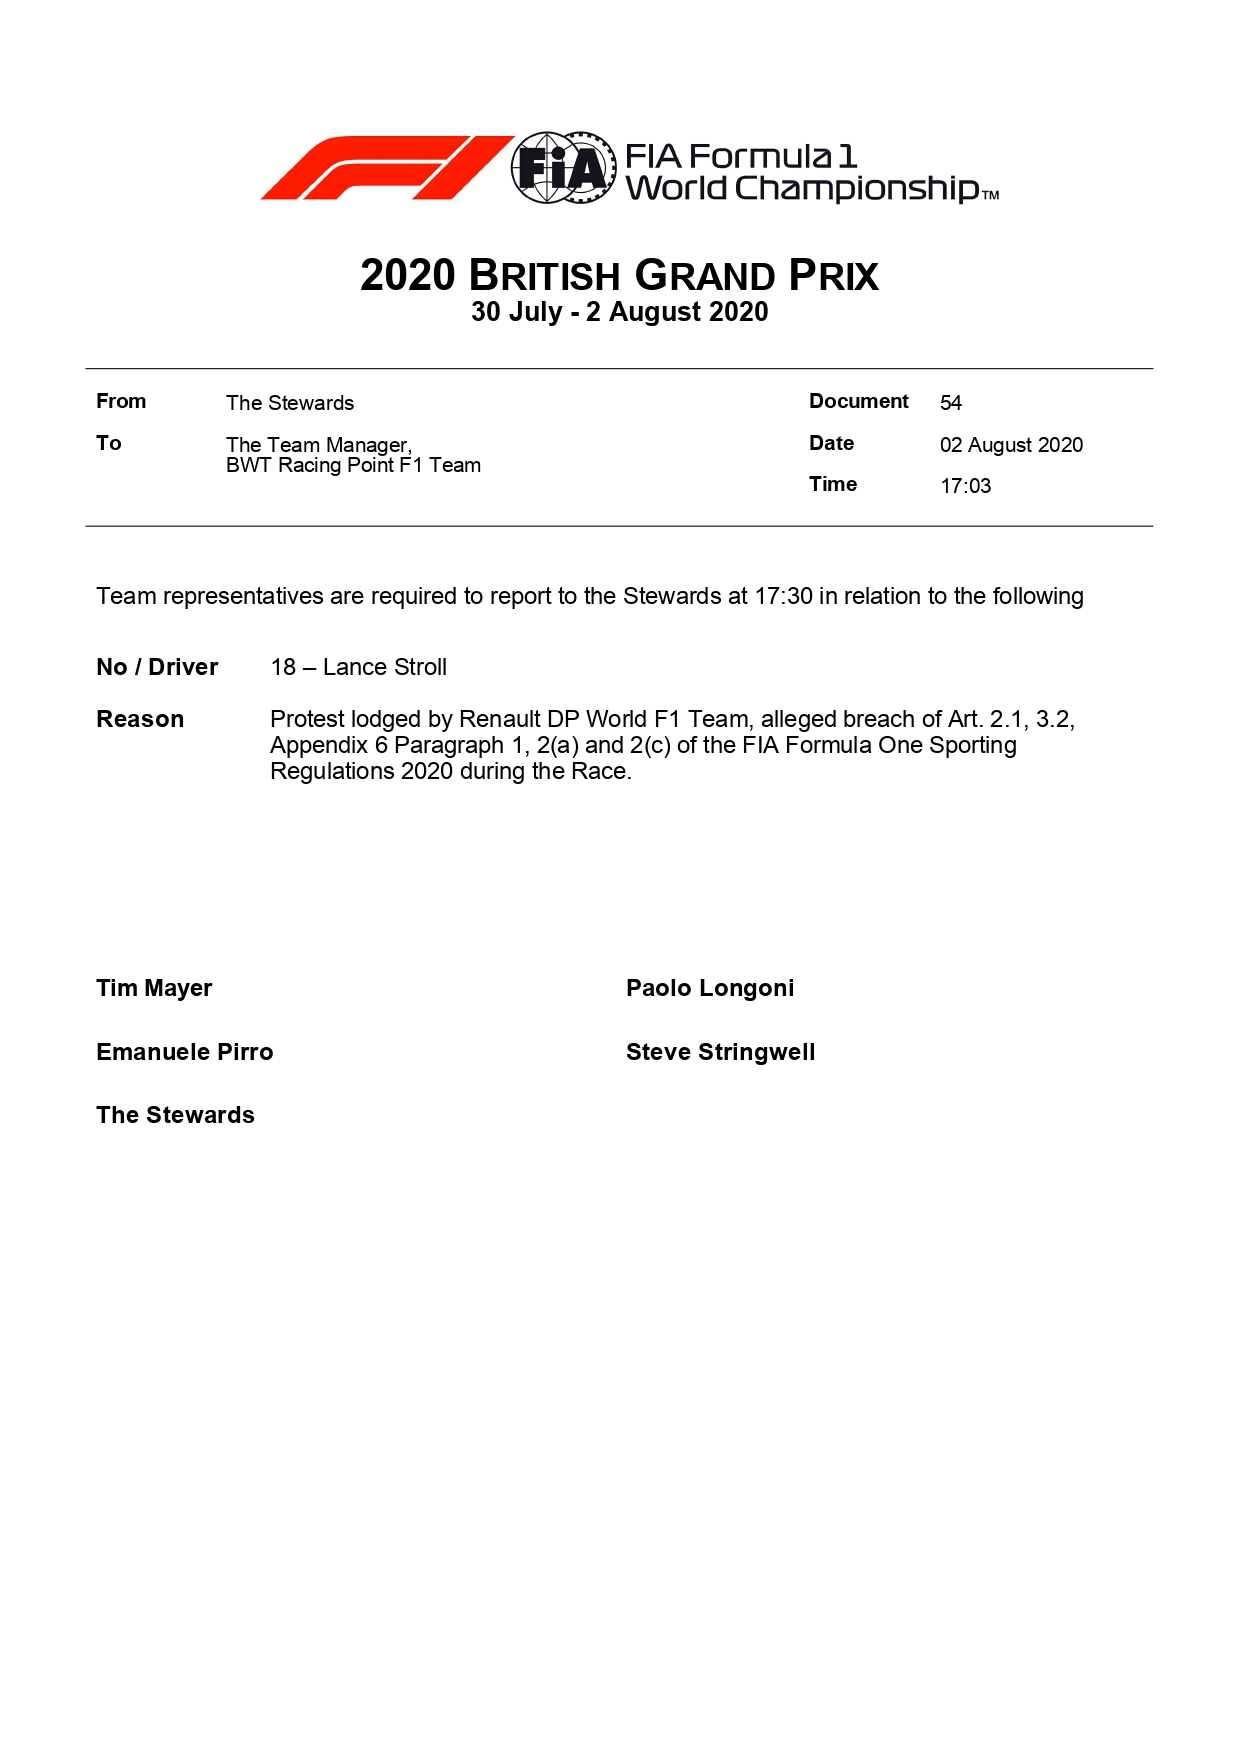 2020_british_grand_prix_-_summons_-_racing_point-_renault_protest_against_car_18_page-0001.jpg